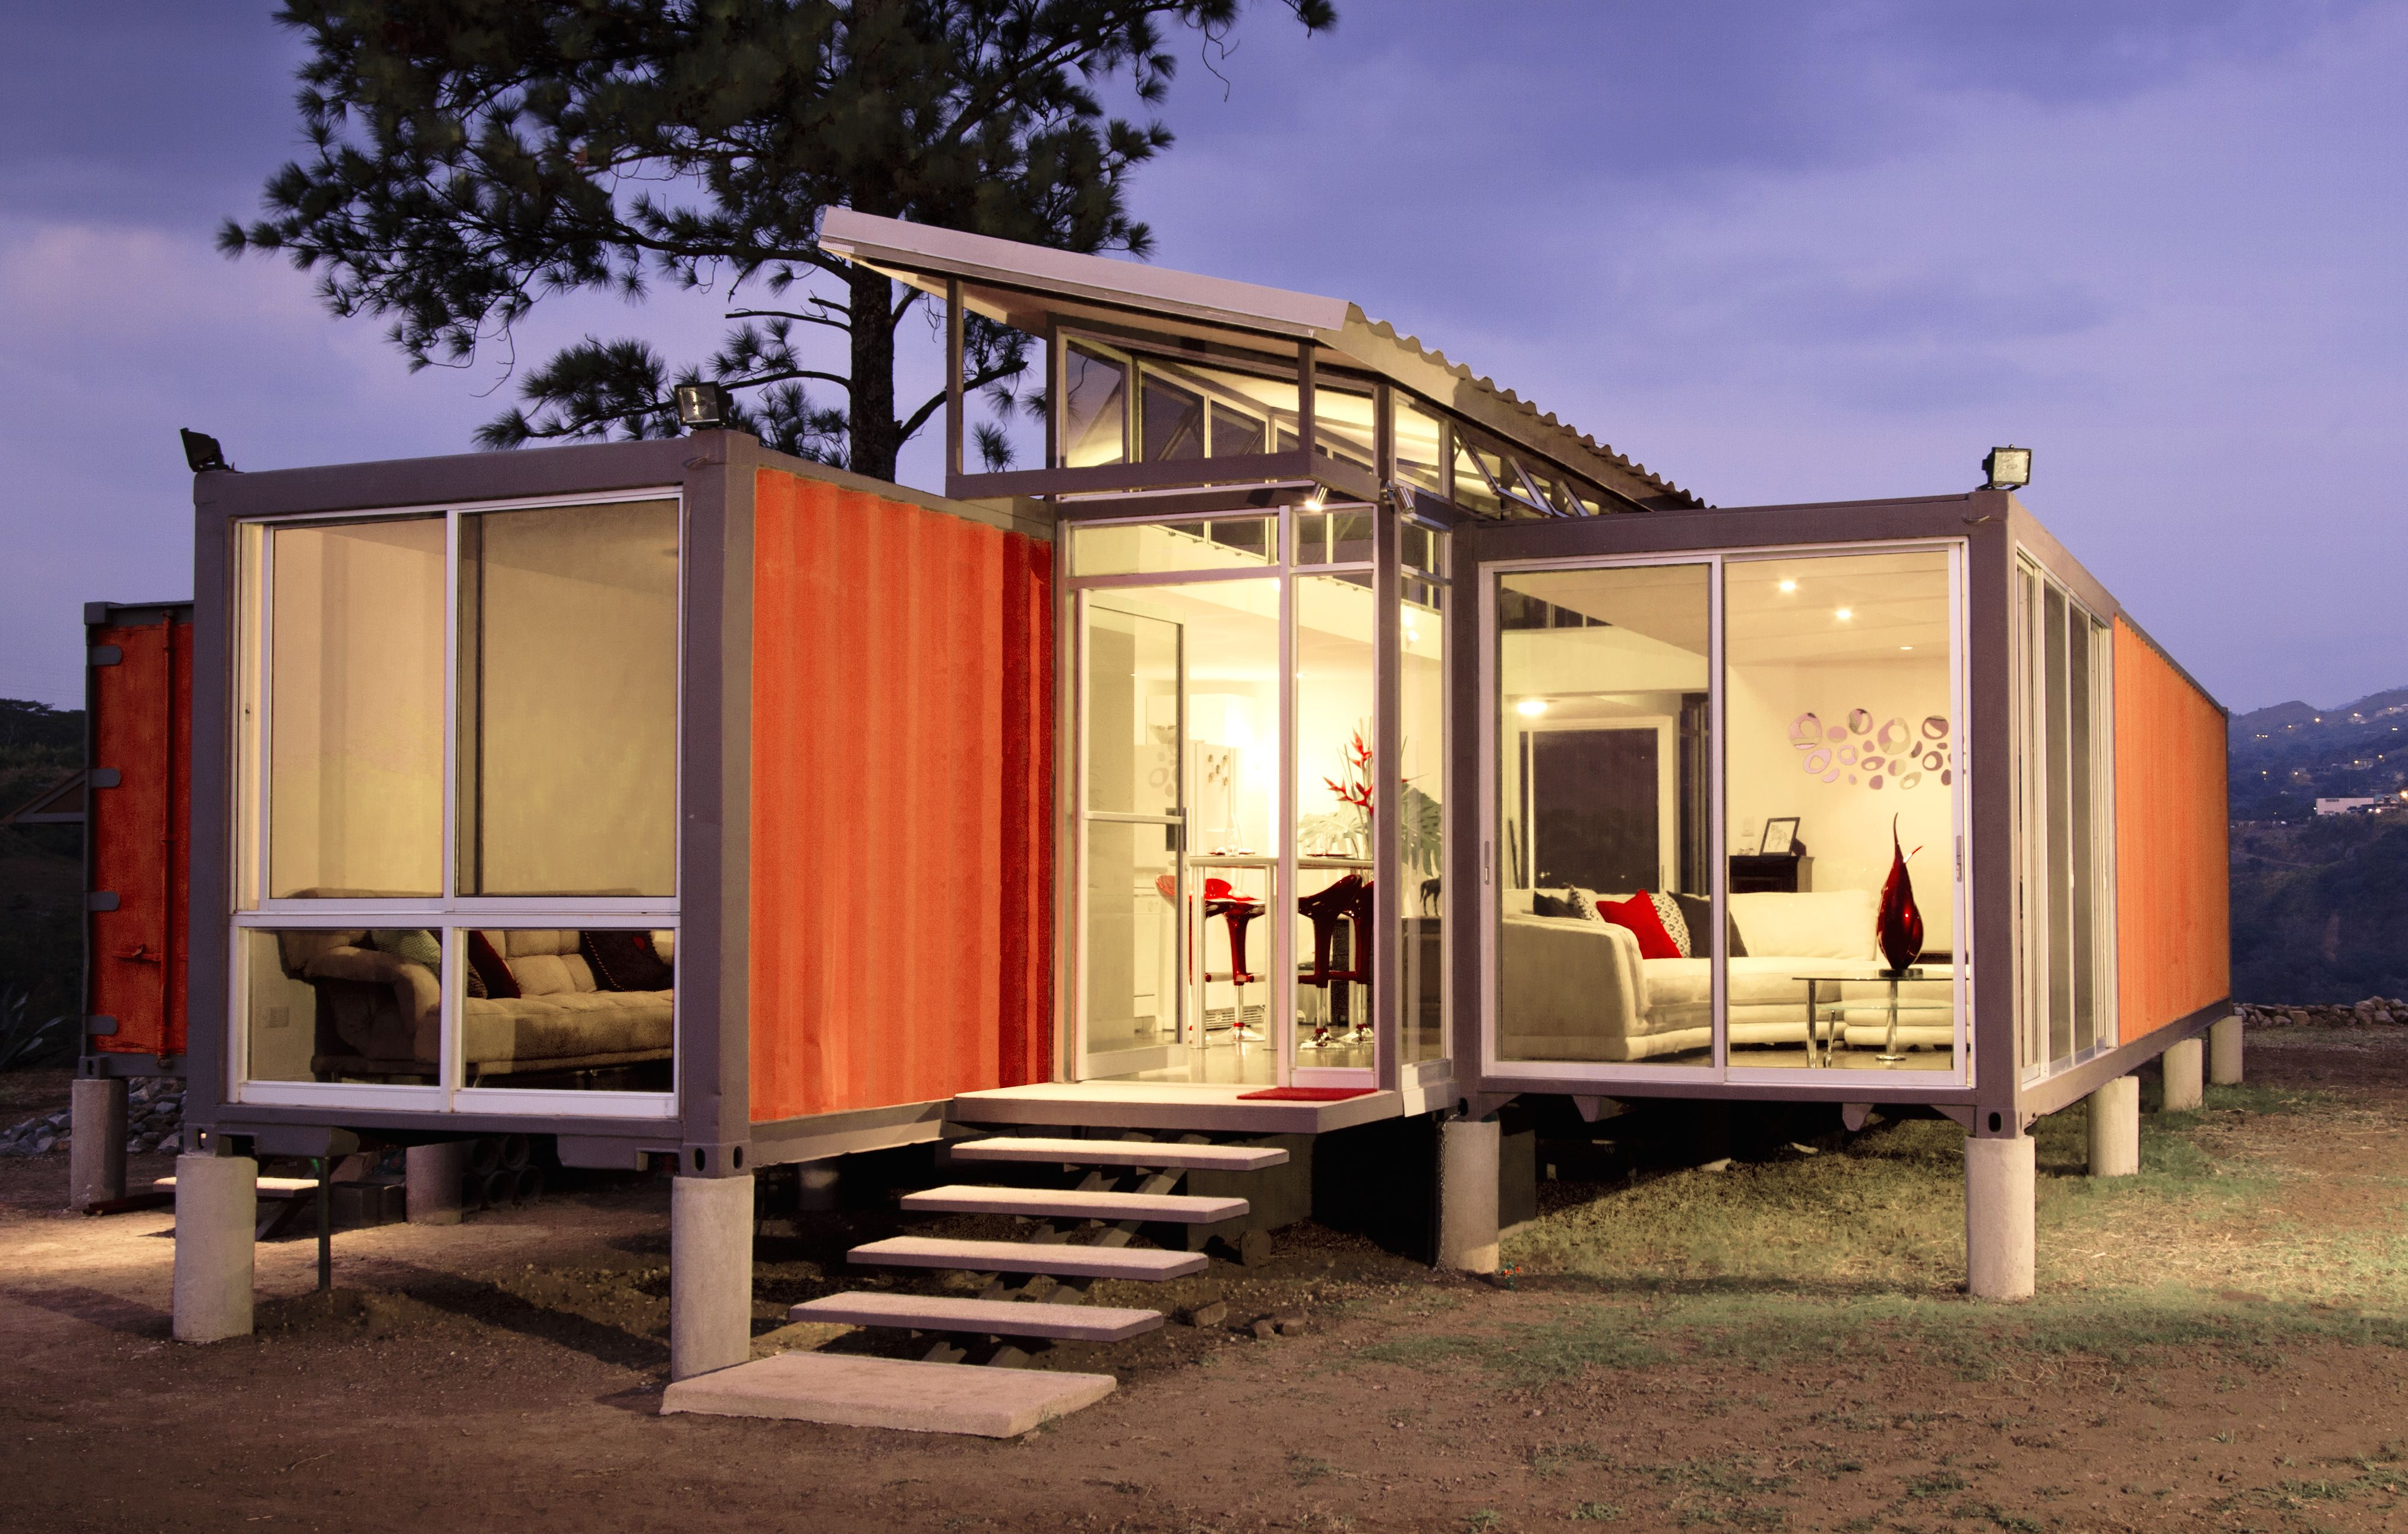 Photo 8 of 10 in 9 Modern Homes Made Out of Shipping